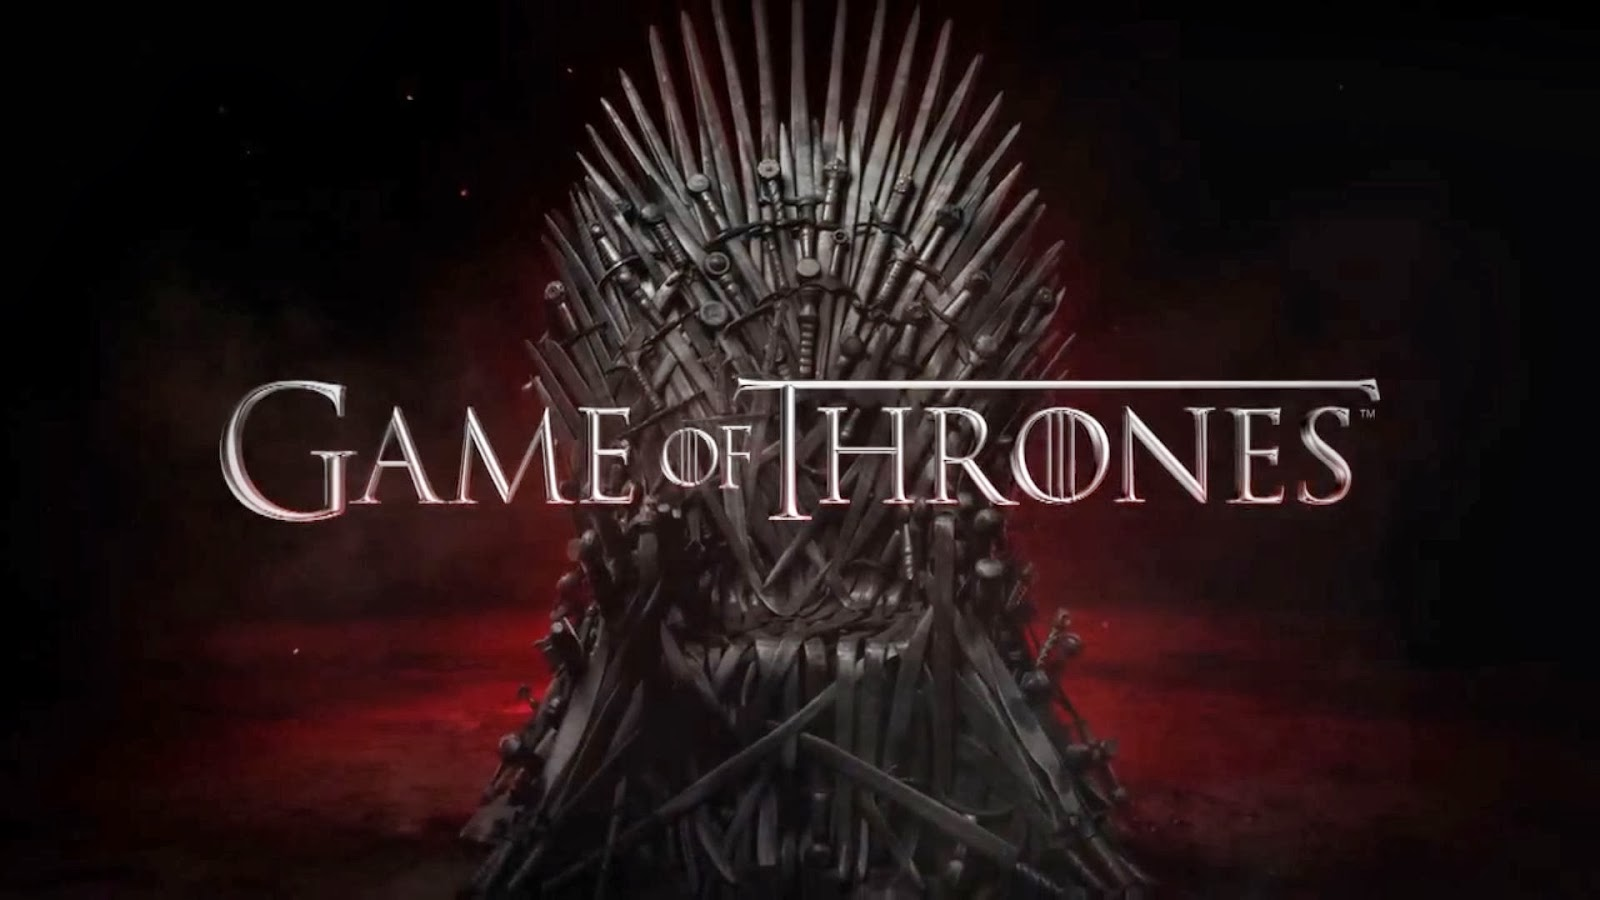 hbo announced game of thrones season 4 release date